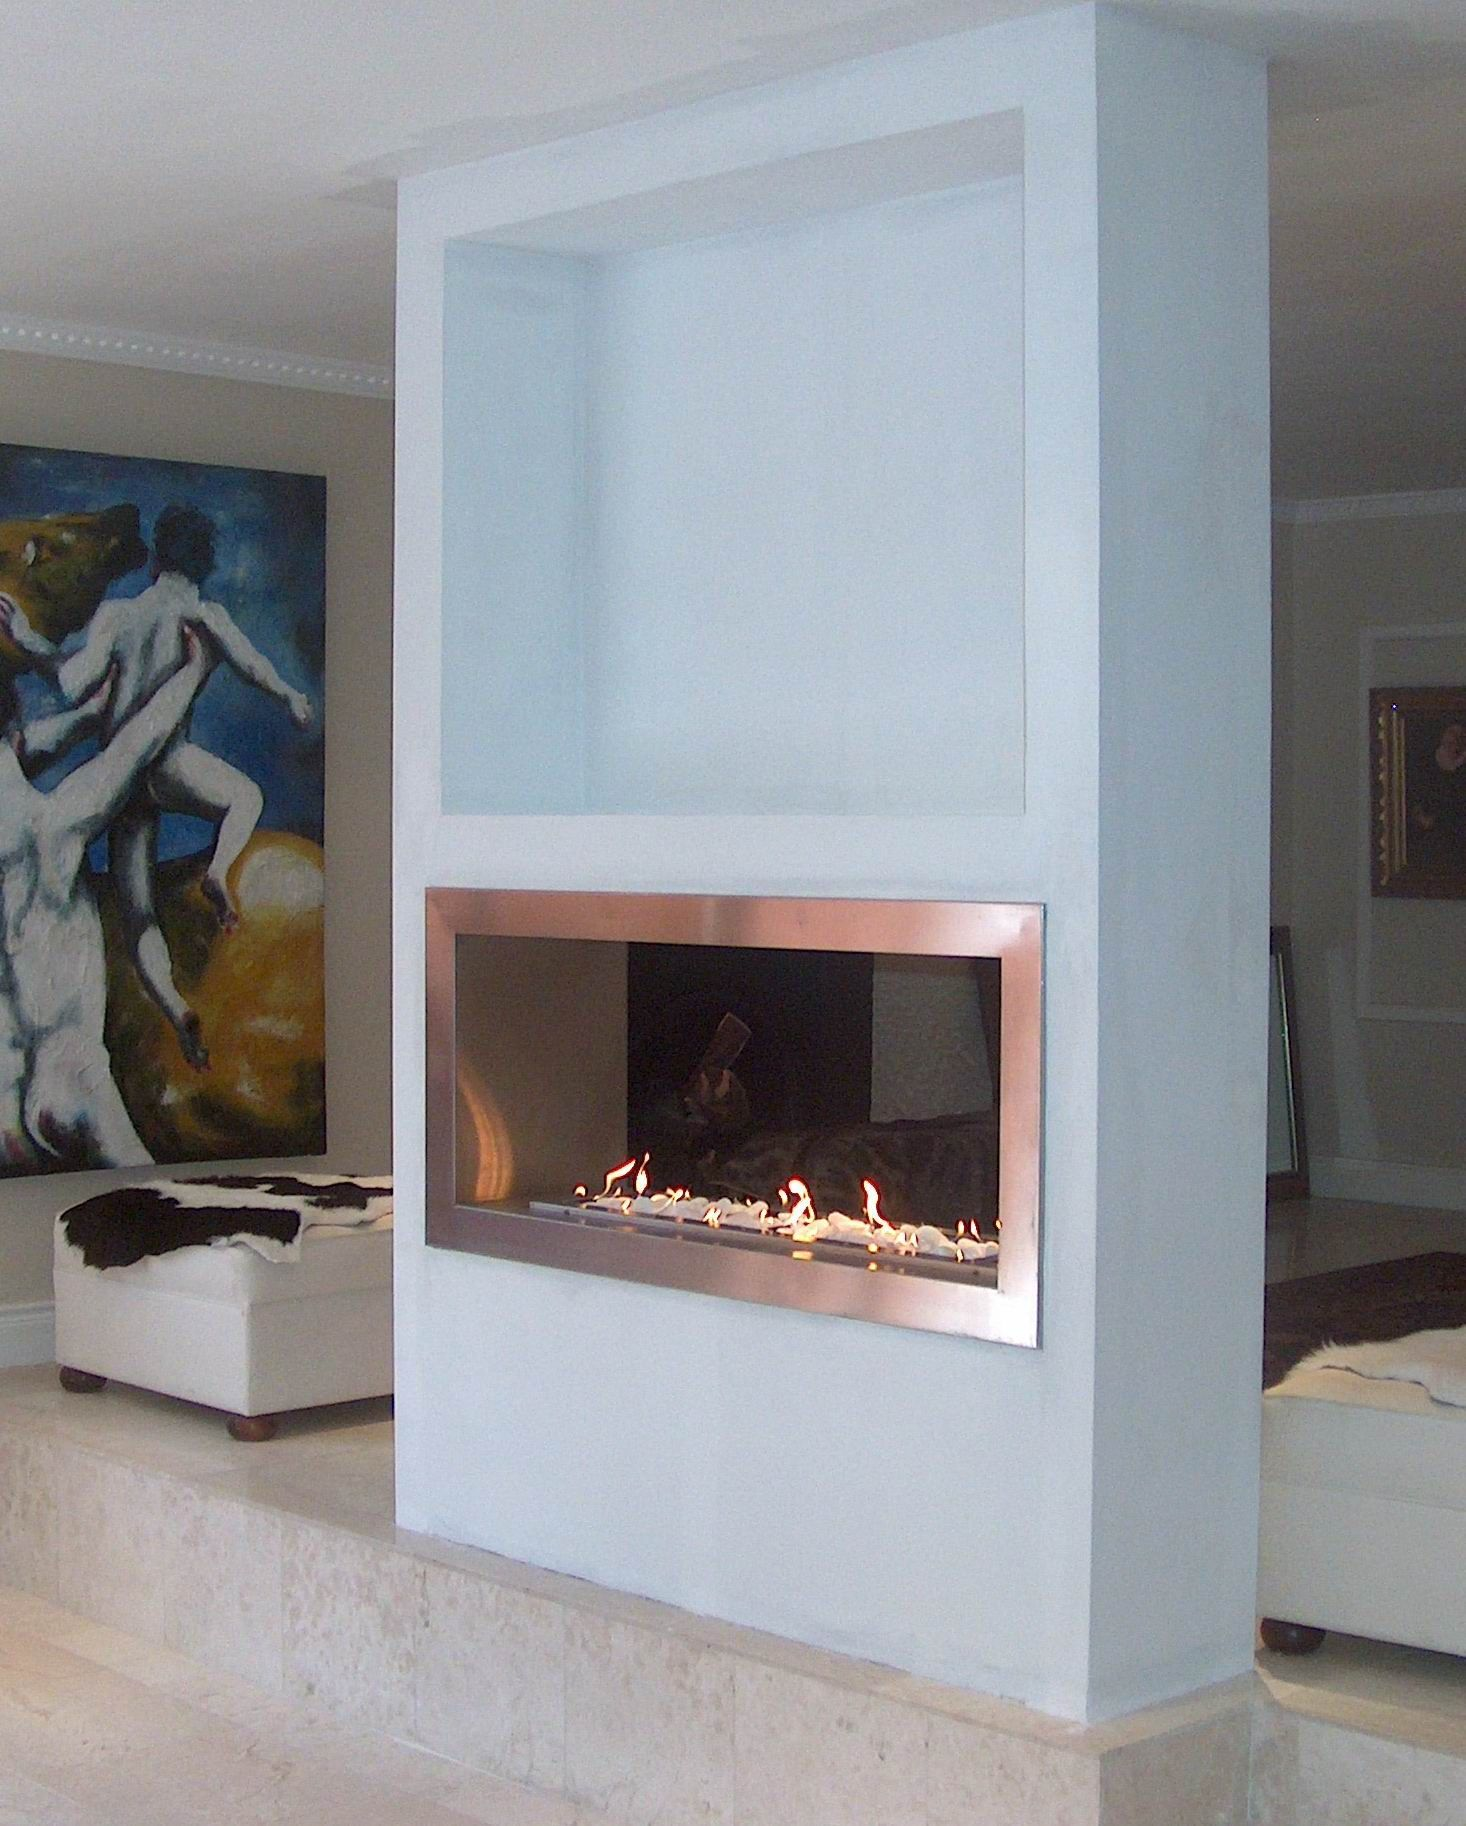 Wall Mounted Natural Gas Fireplace New I Know which Wall I Want A Double Sided Fire Place On D